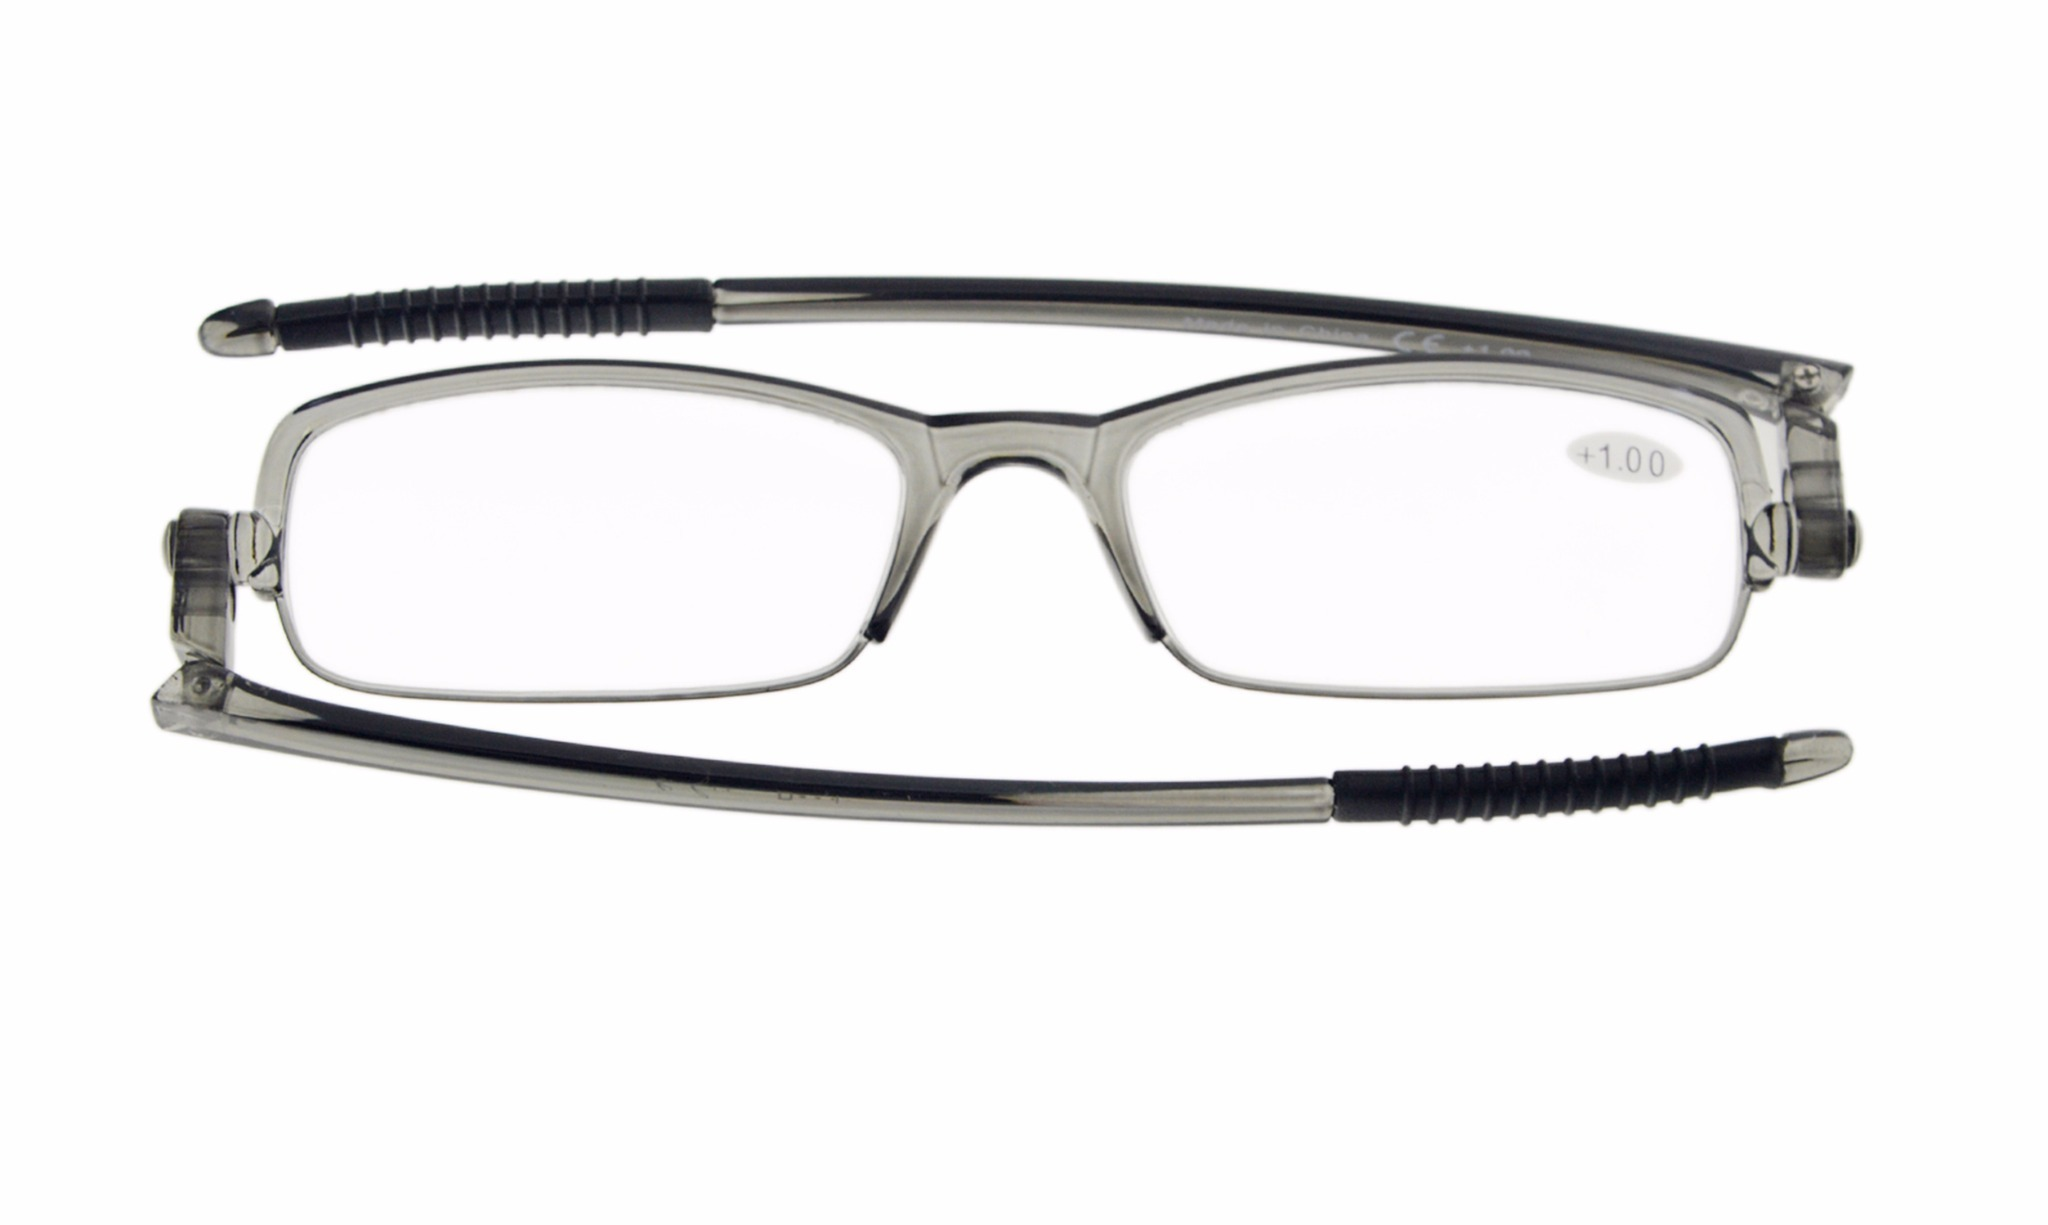 235d04a774a2 Eyekepper 360° Foldable Temples Reading Glasses With Transparent Case Grey  Frame R200-Grey